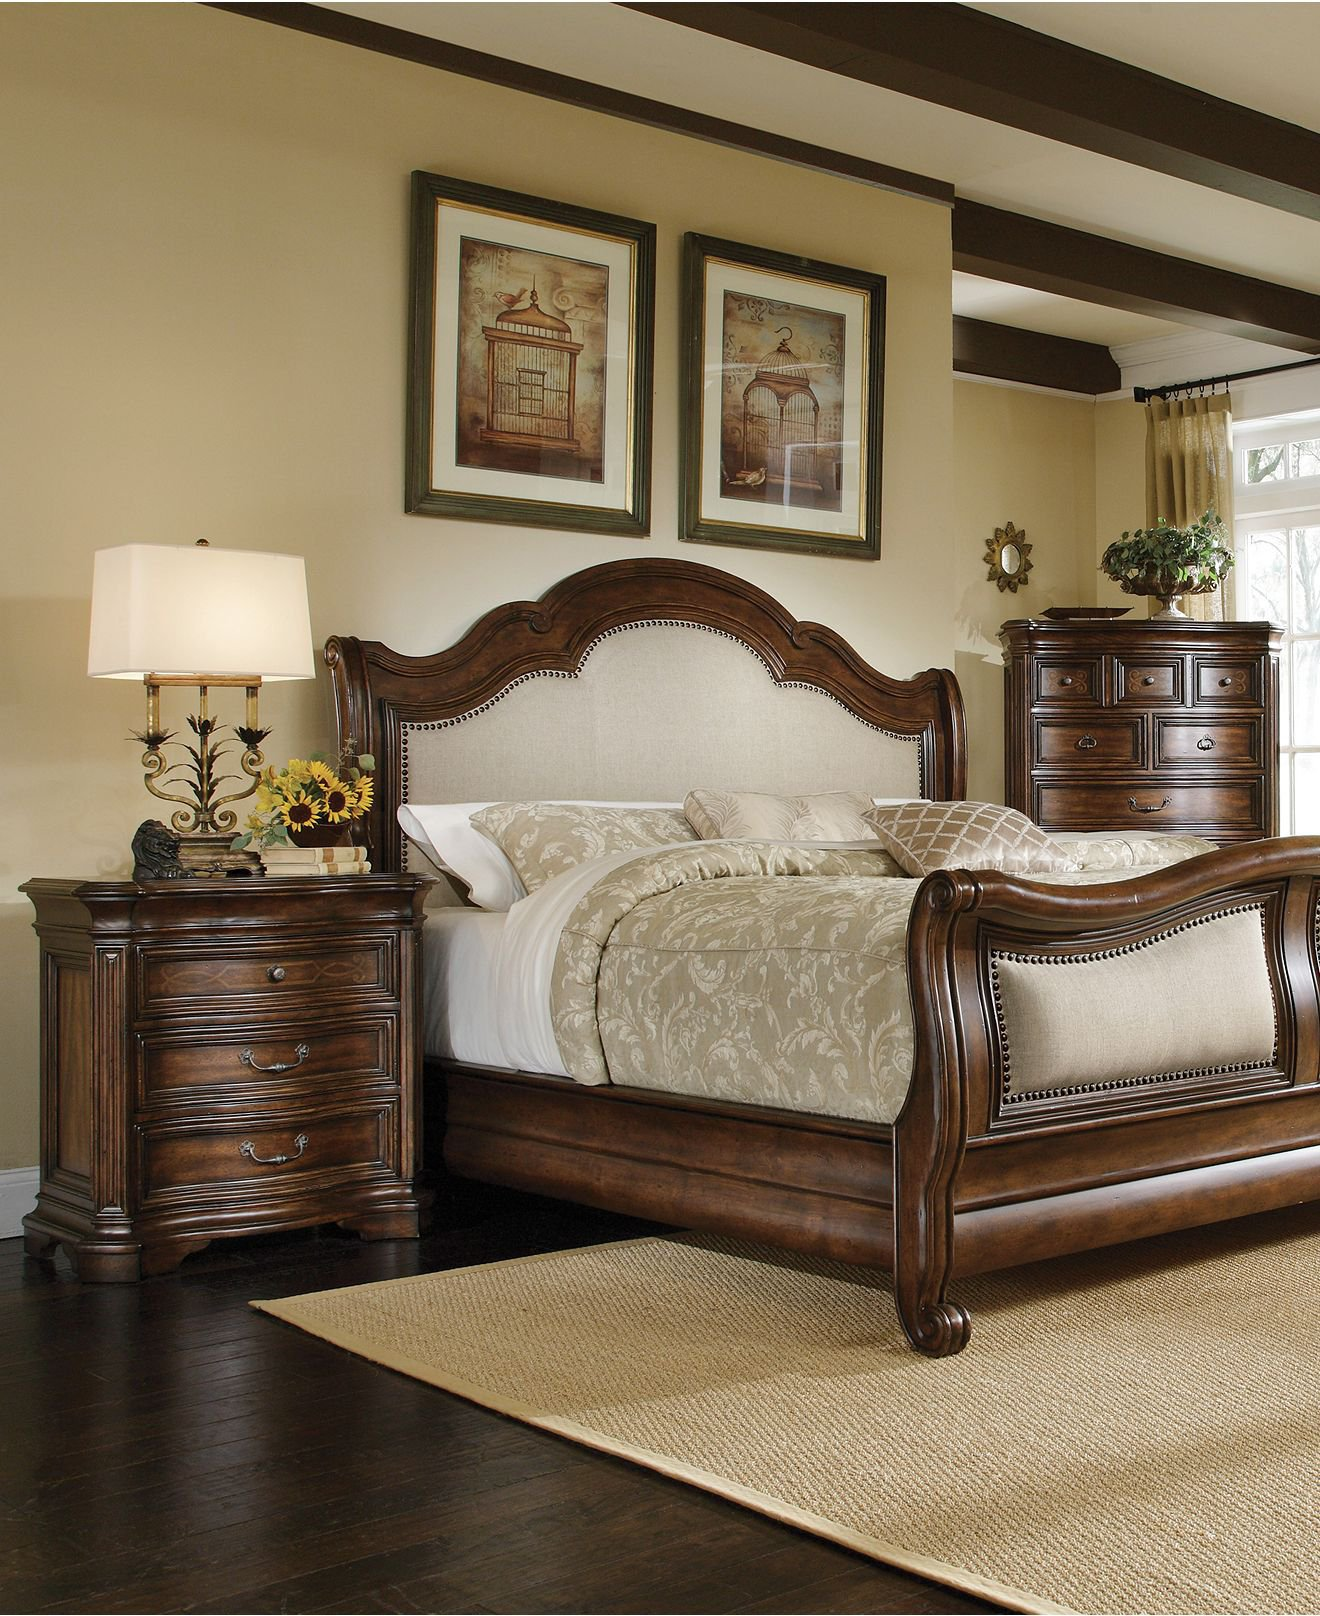 Salamanca Bedroom Furniture Sets & Pieces from Macy s